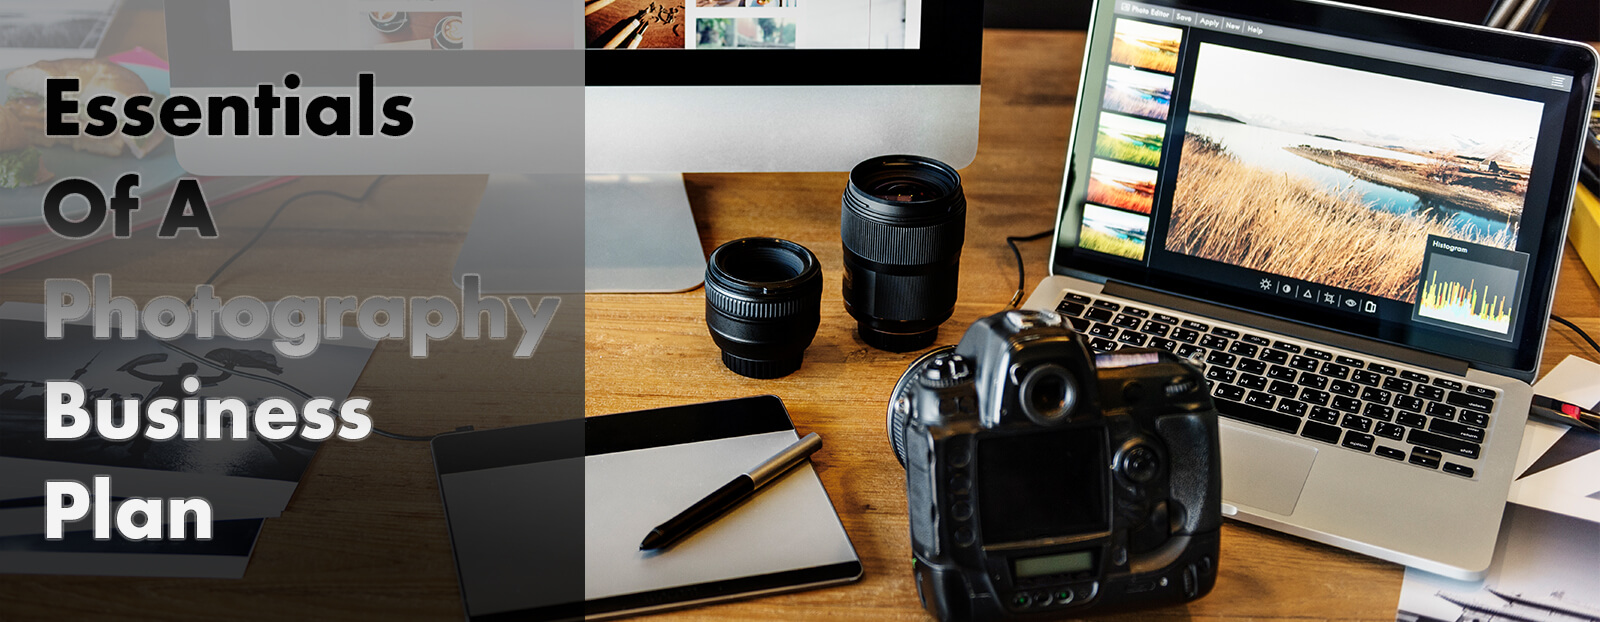 Essentials Of A Photography Business Plan